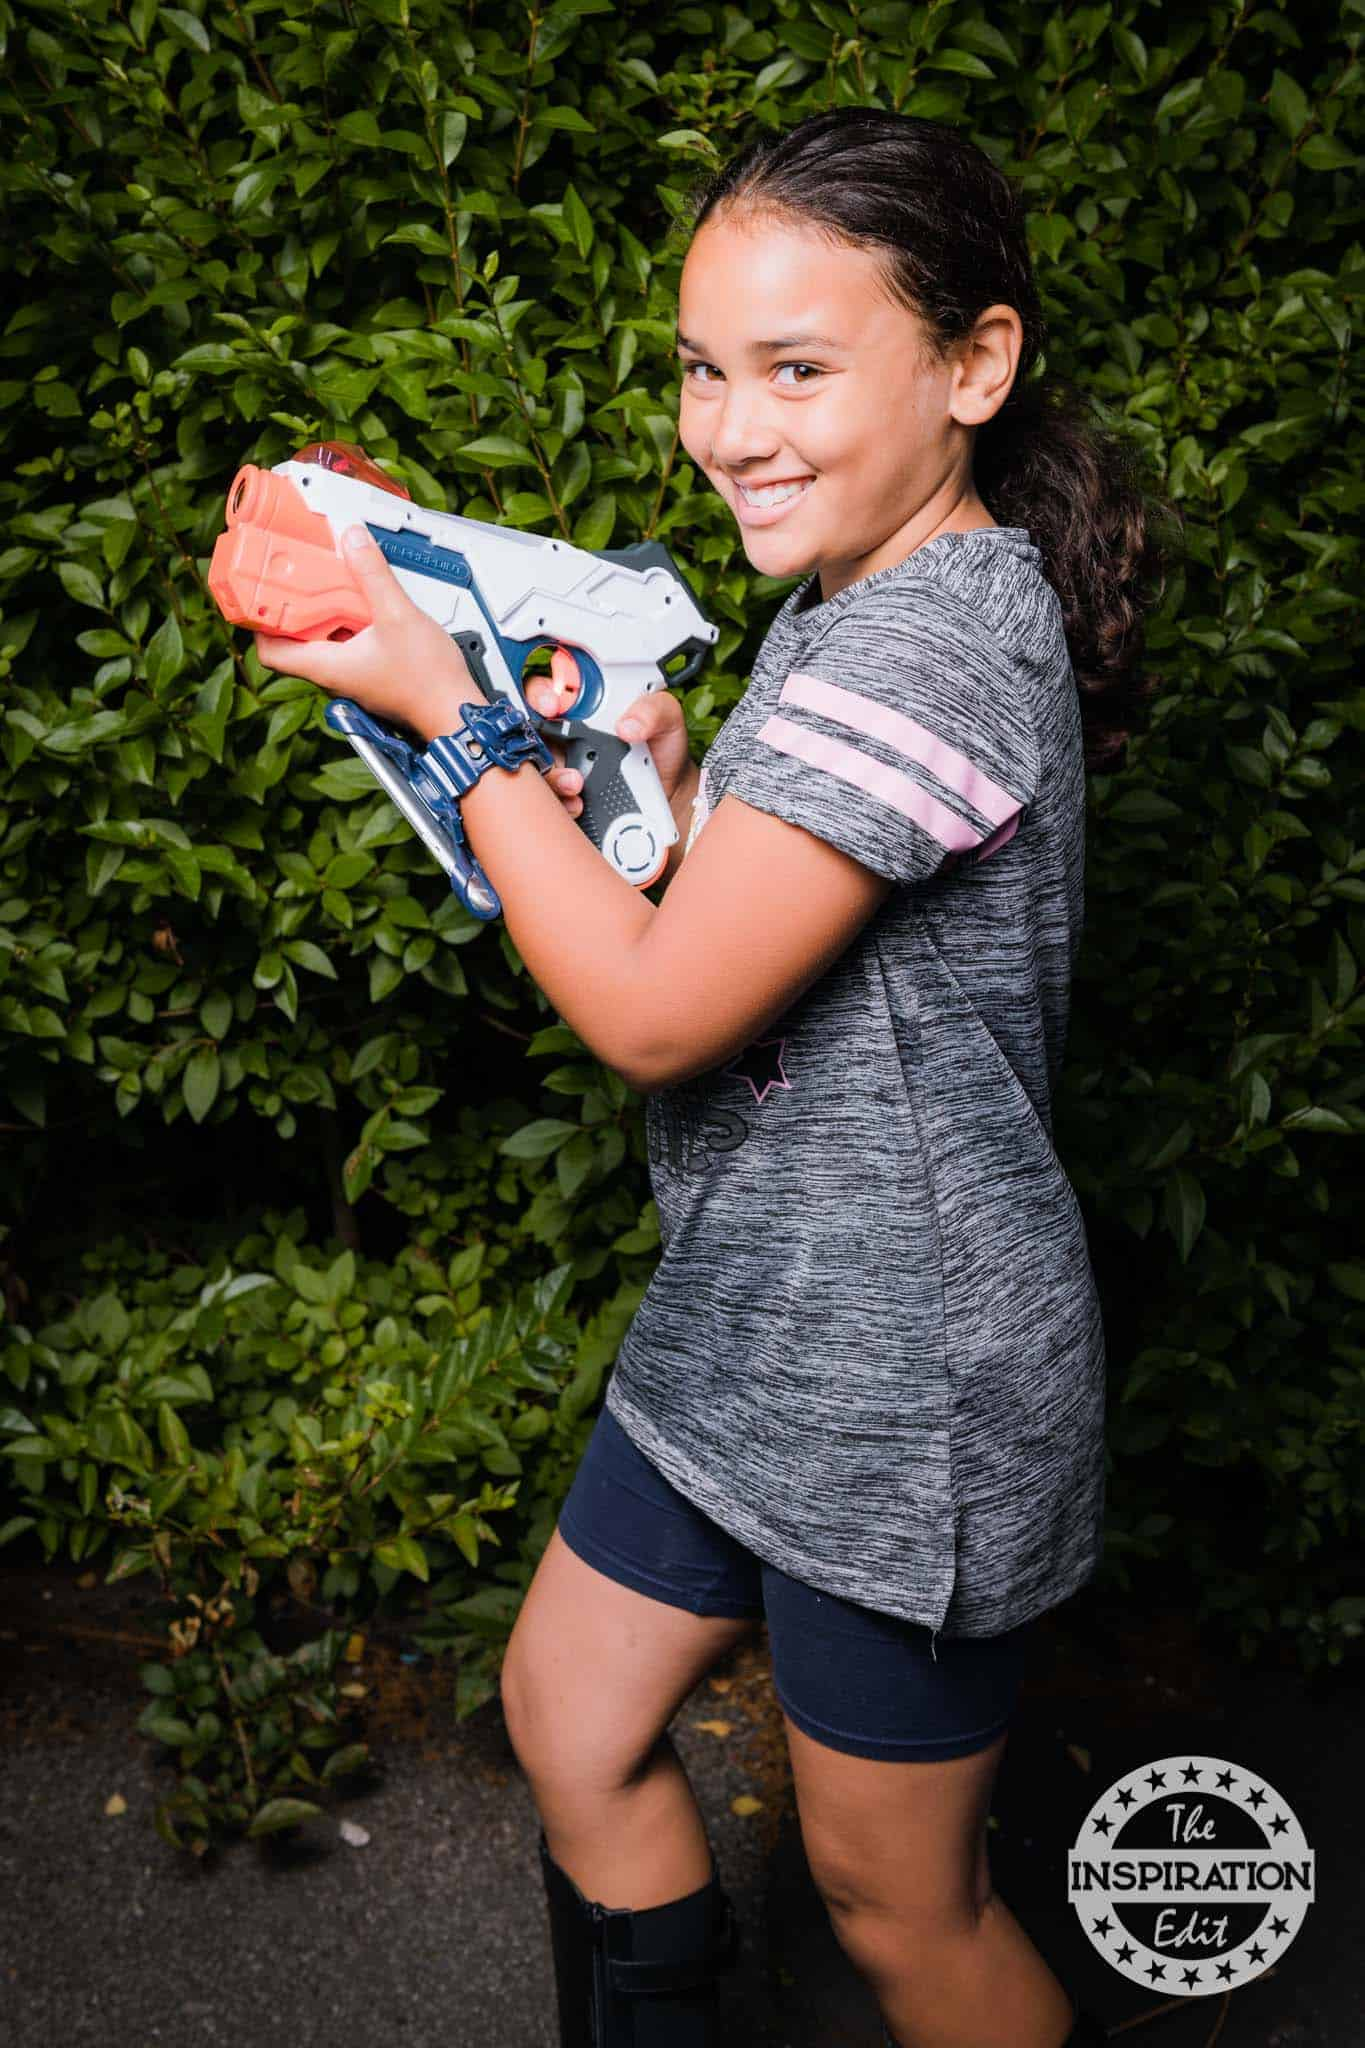 Nerf Laser Ops Pro Alphapoint - Playing around